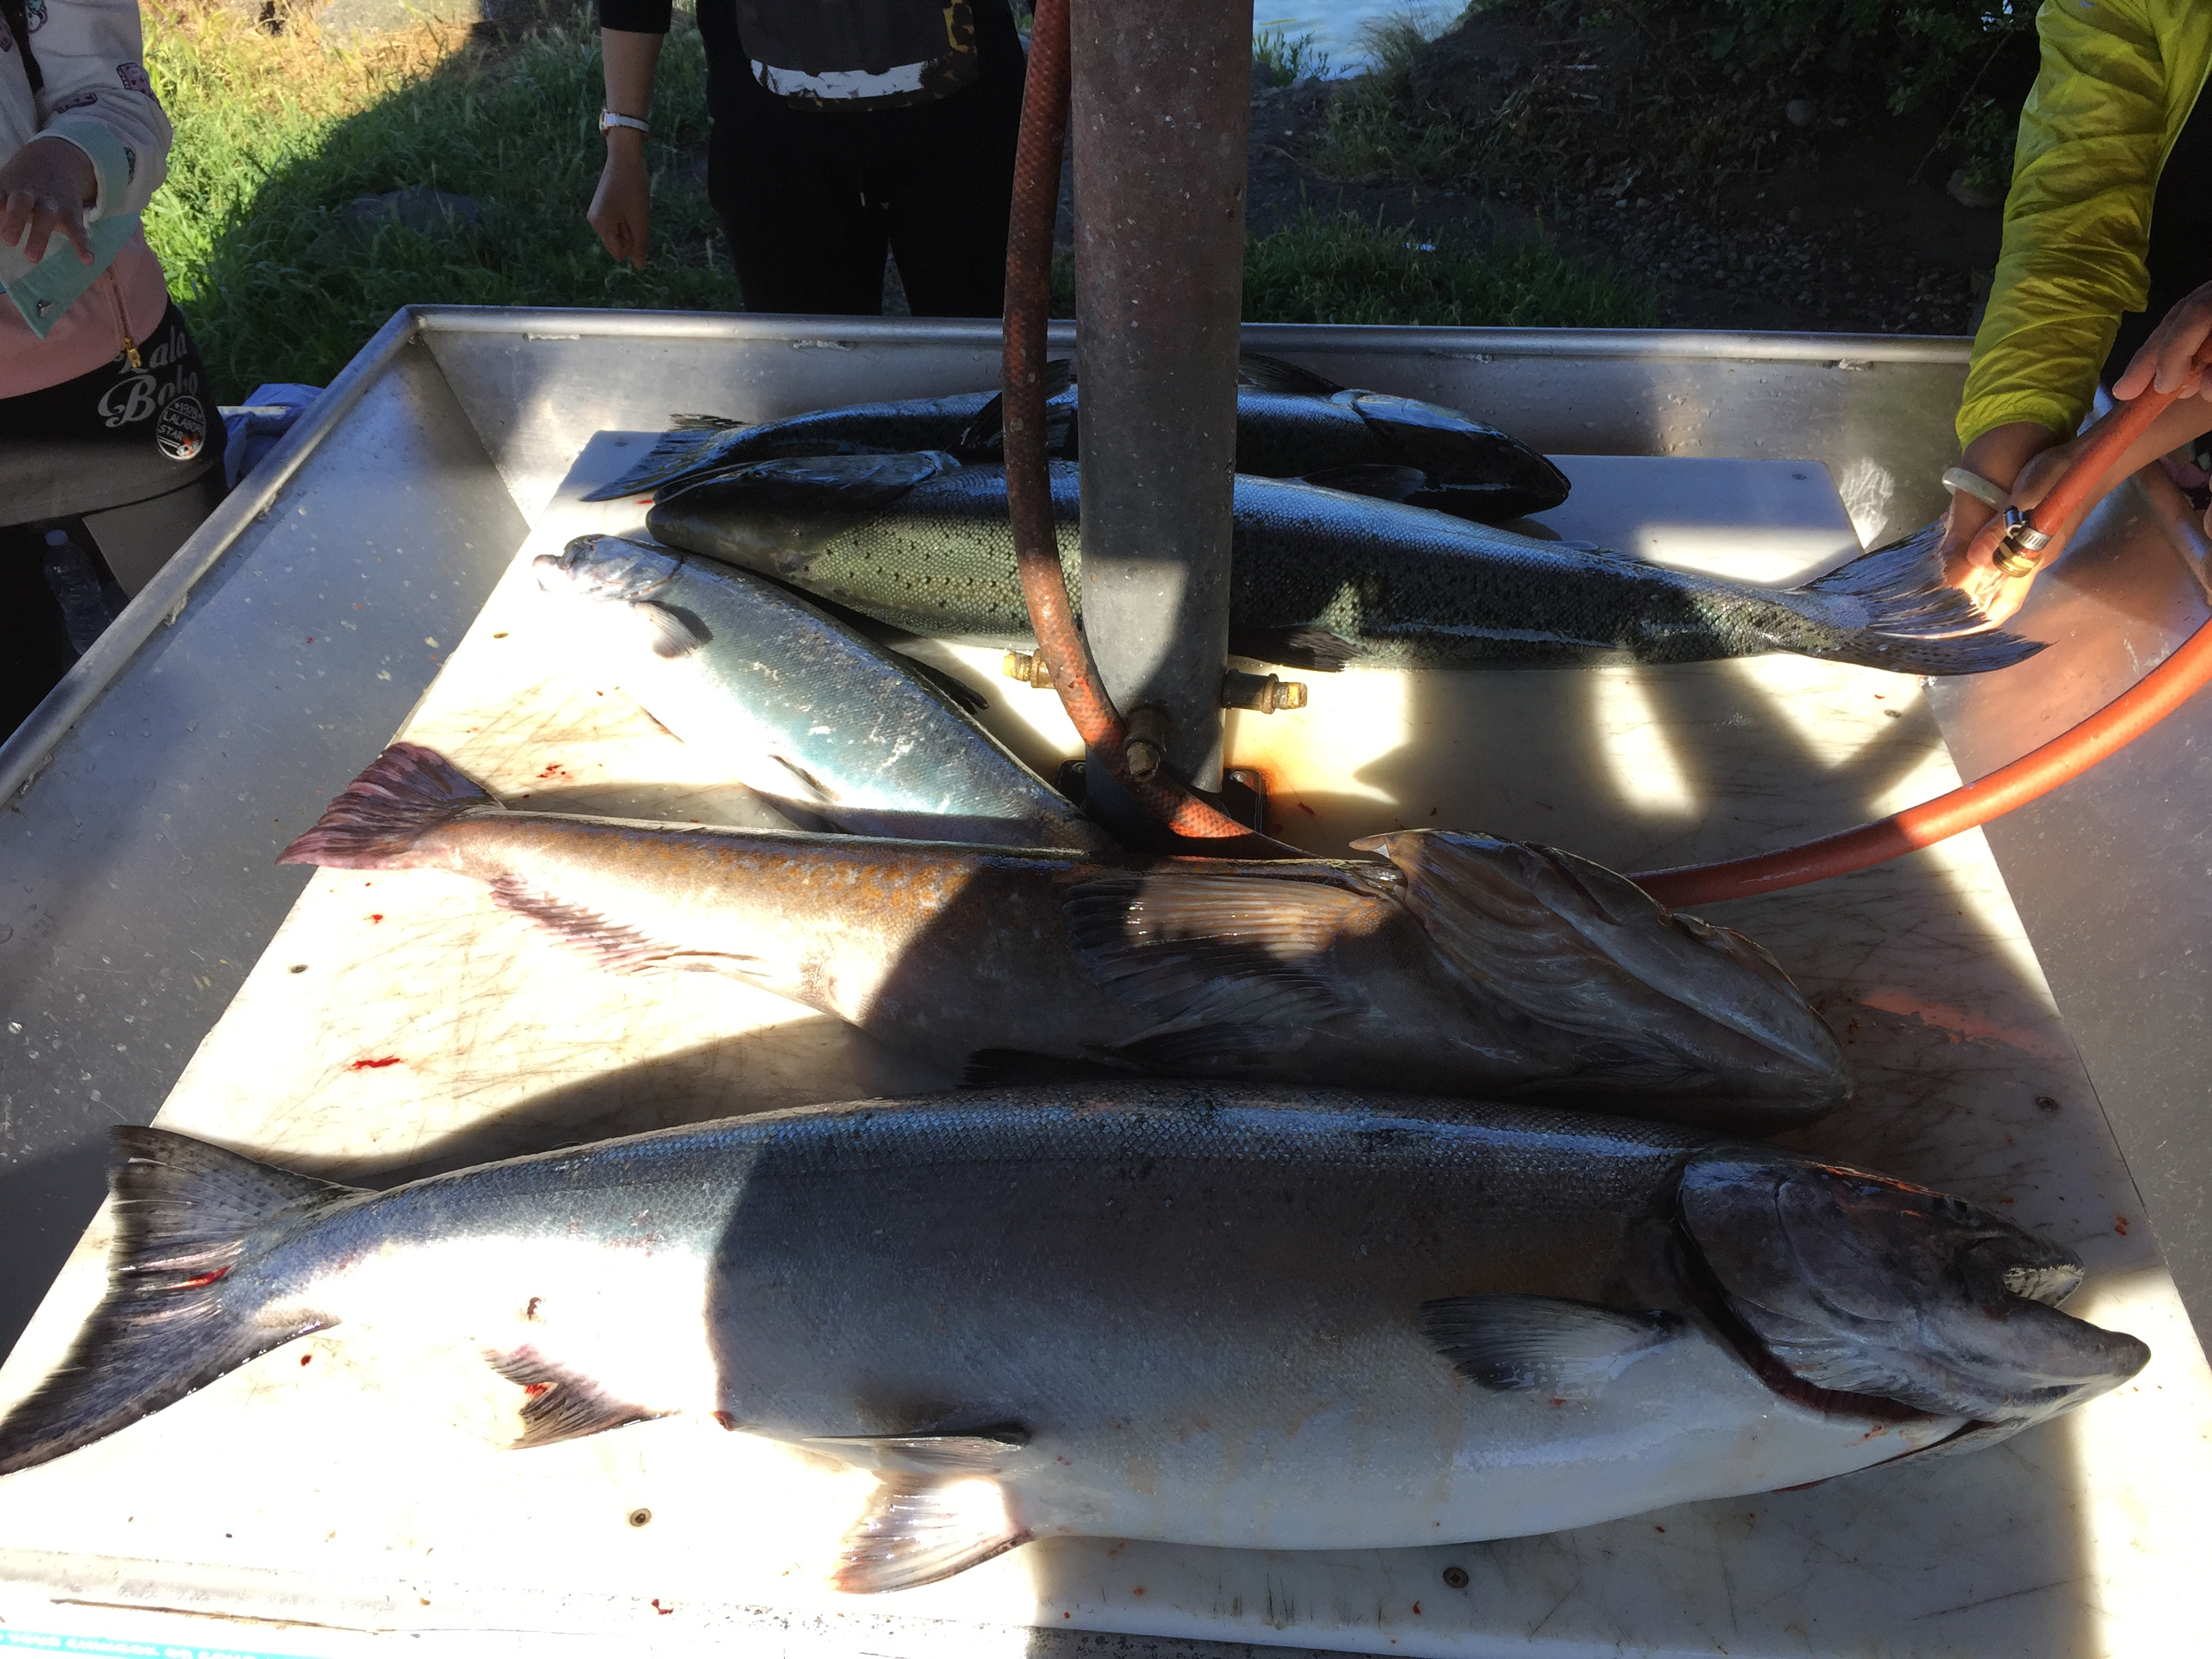 Nanaimo fishing charters nice catch